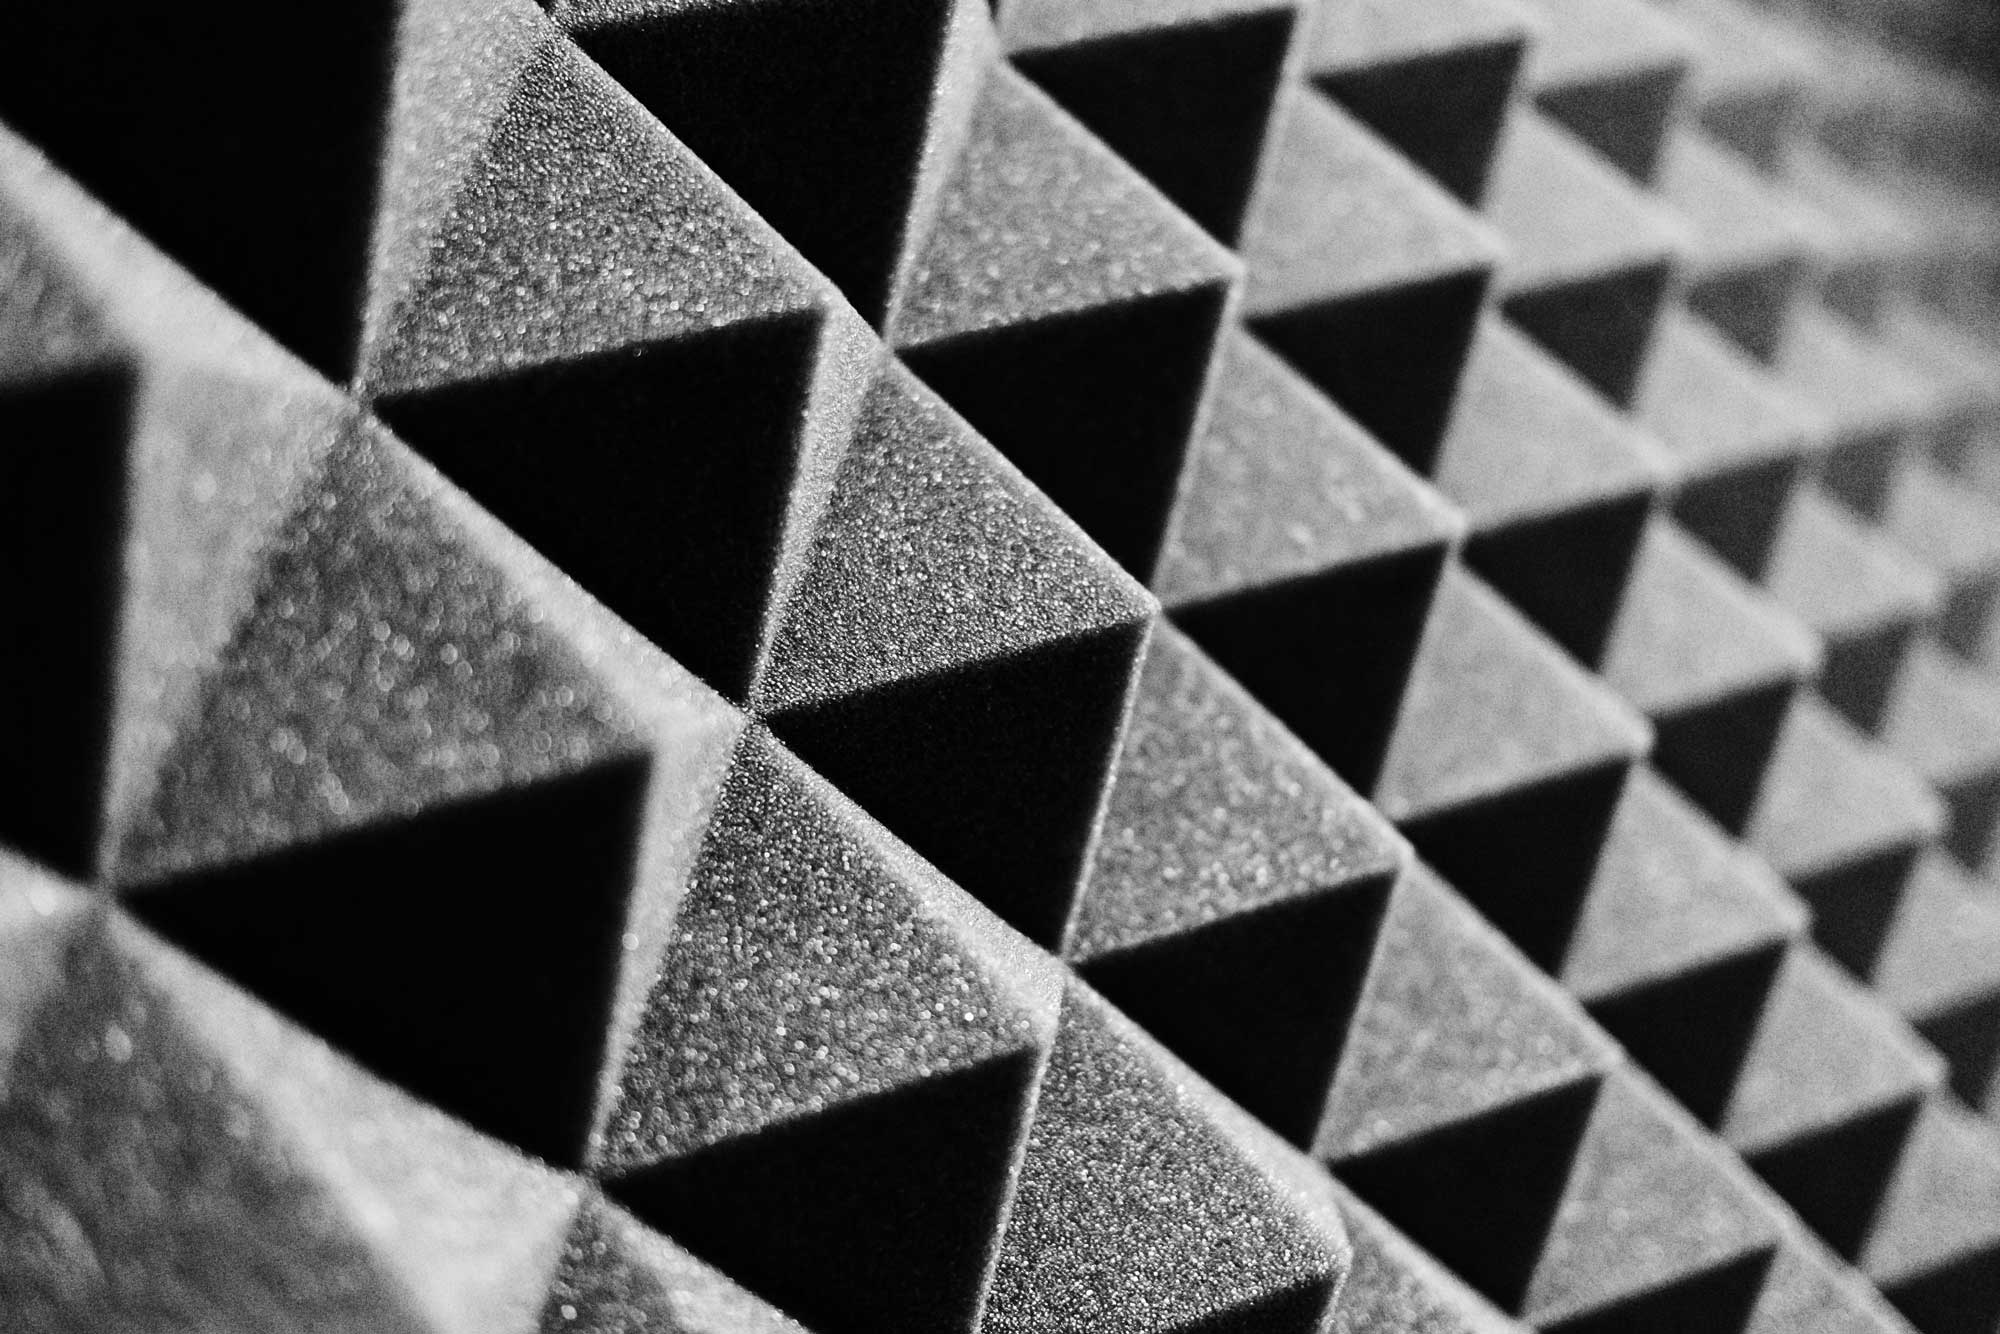 acoustic-foam-close-up-picjumbo-com-lo